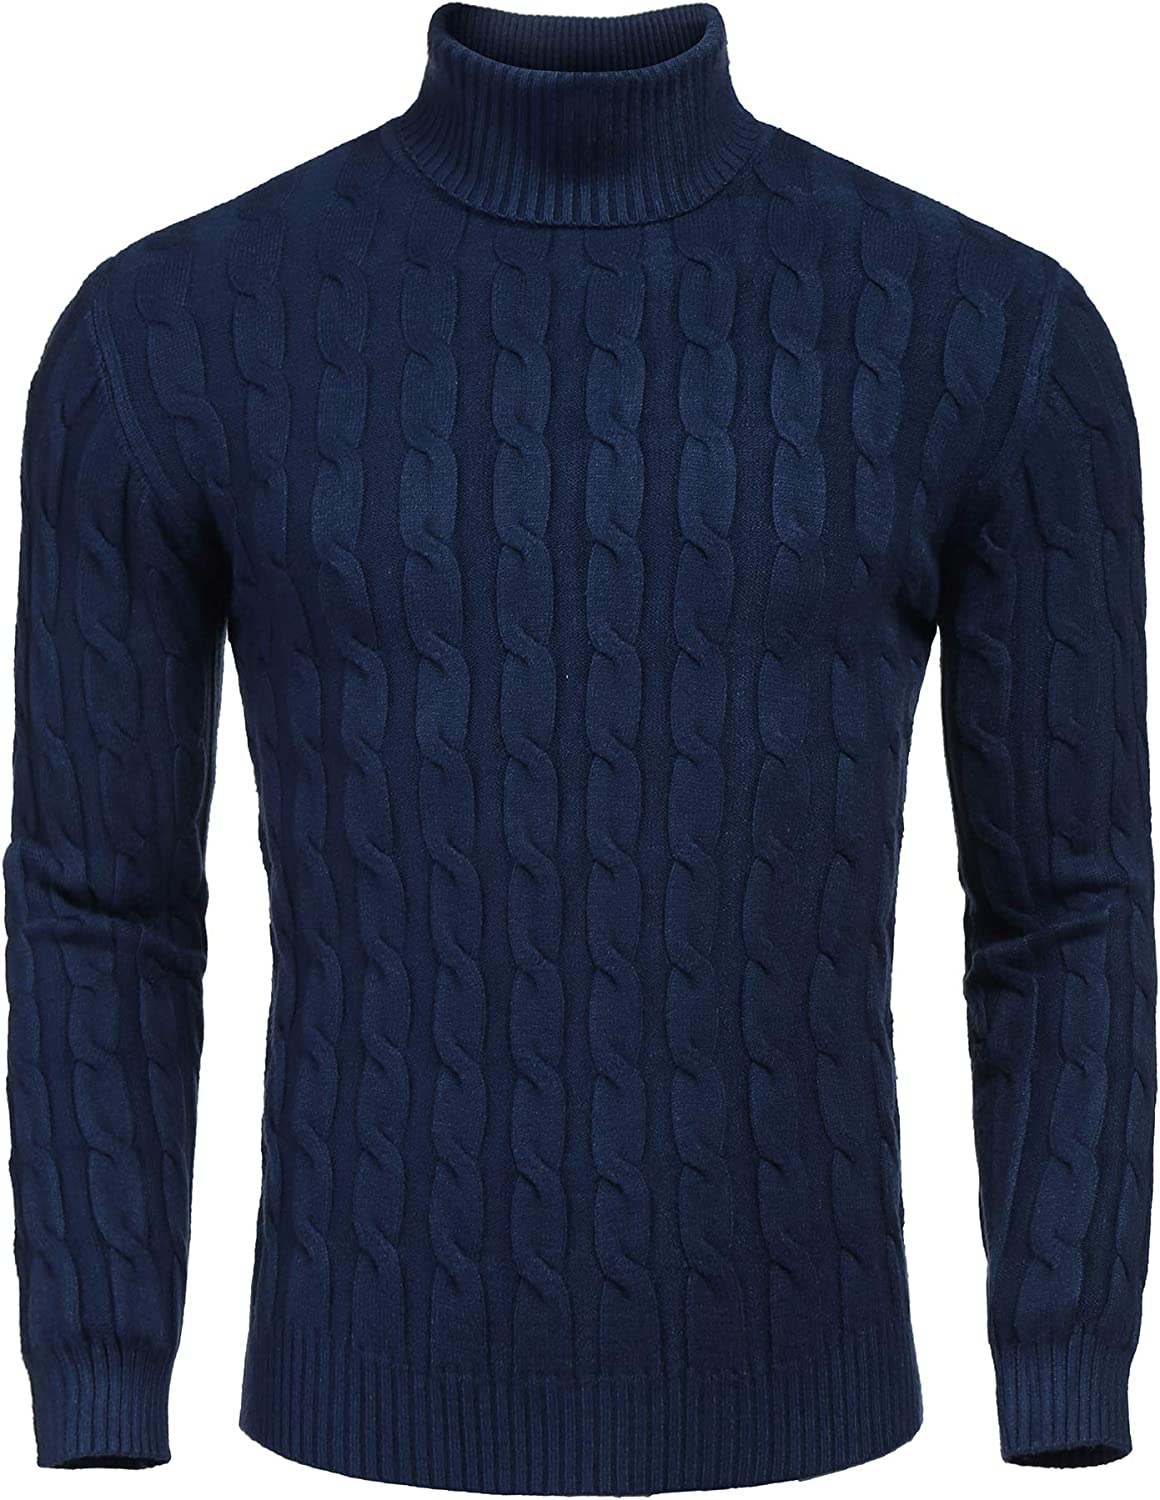 COOFANDY Men's Slim All Fresno Mall items free shipping Fit Turtleneck Casual Twisted Knitte Sweater